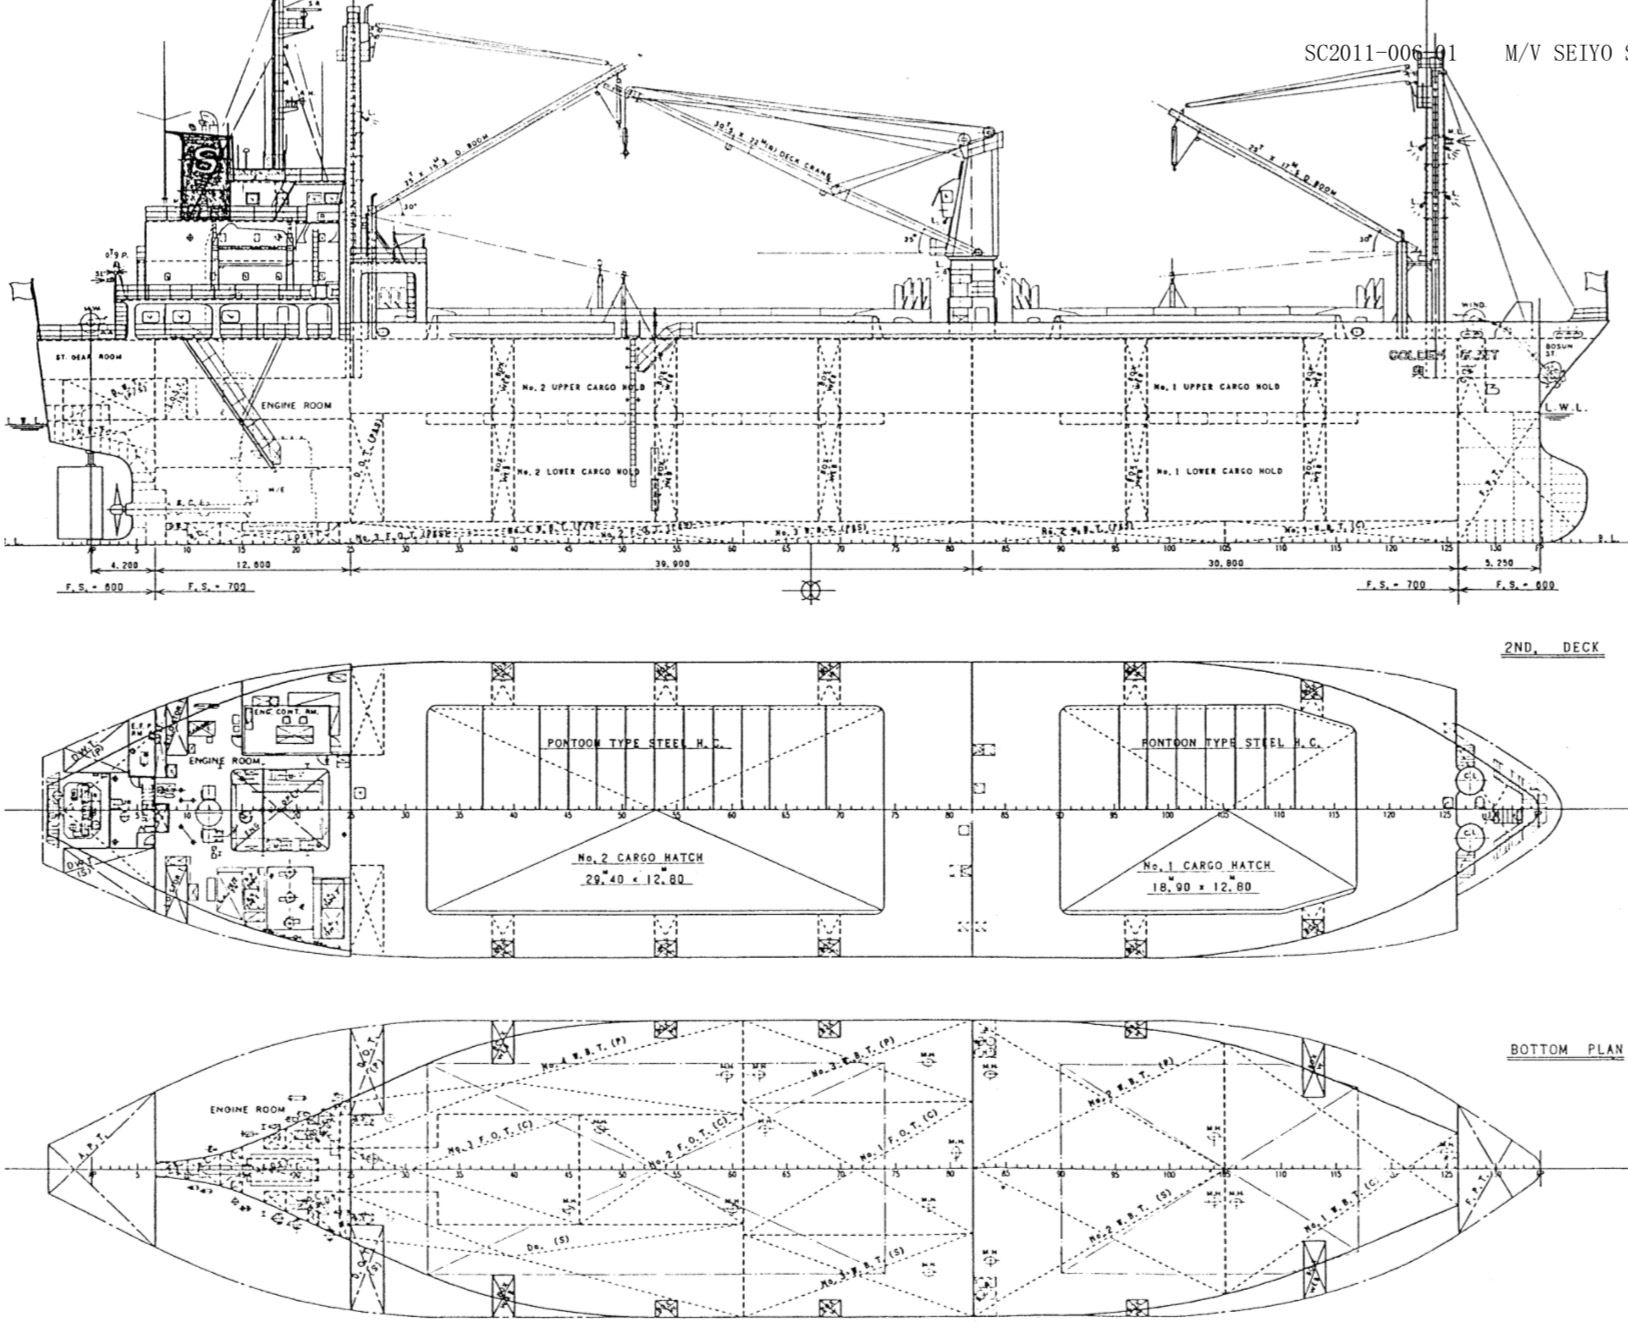 us flag cargo ships electrical schematic